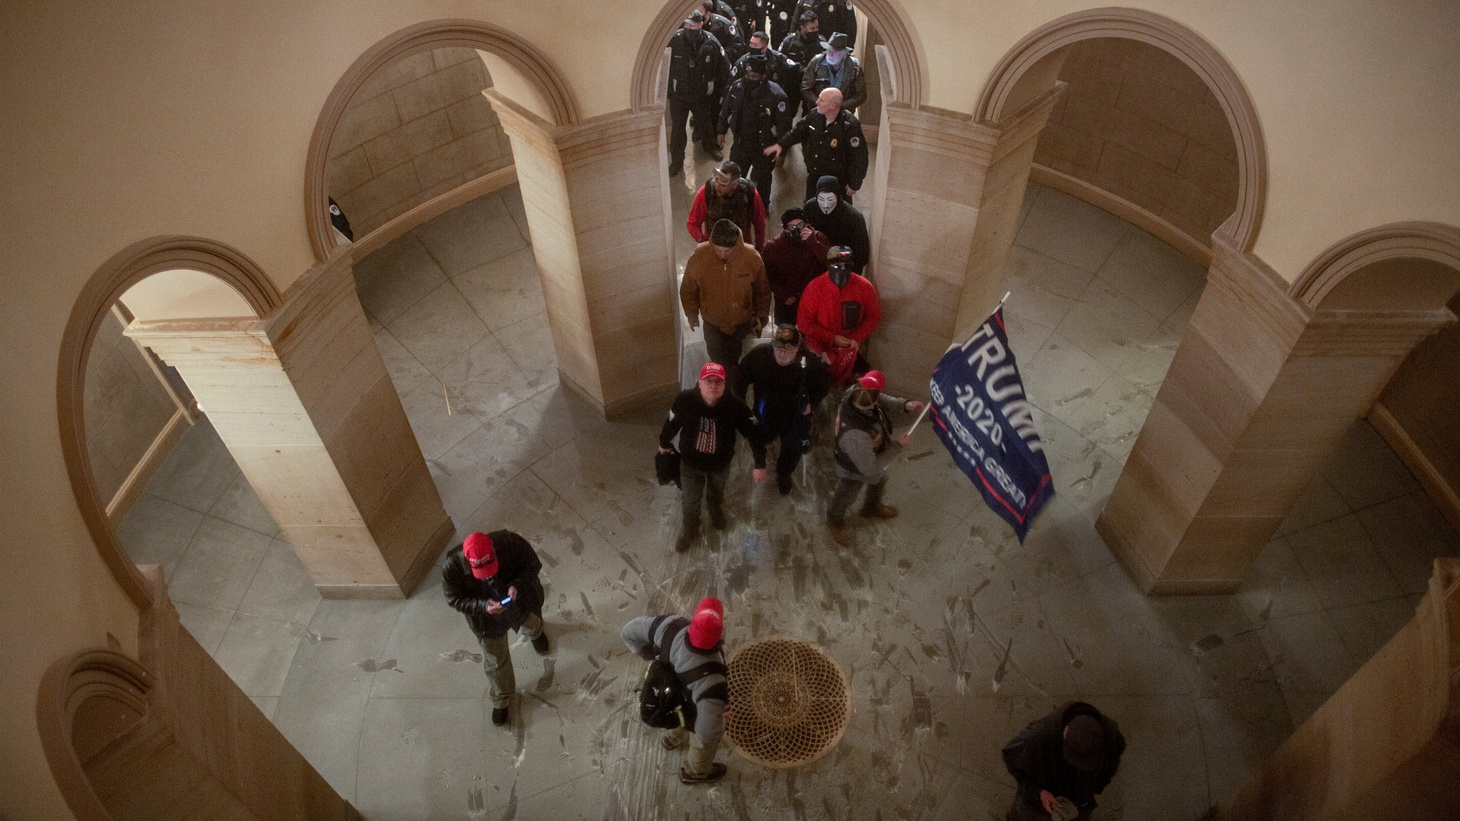 Pro-Trump protesters storm the U.S. Capitol during a rally to contest the certification of the 2020 U.S. presidential election results by the U.S. Congress, at the U.S. Capitol Building in Washington, D.C., U.S. January 6, 2021. Picture taken January 6, 2021.